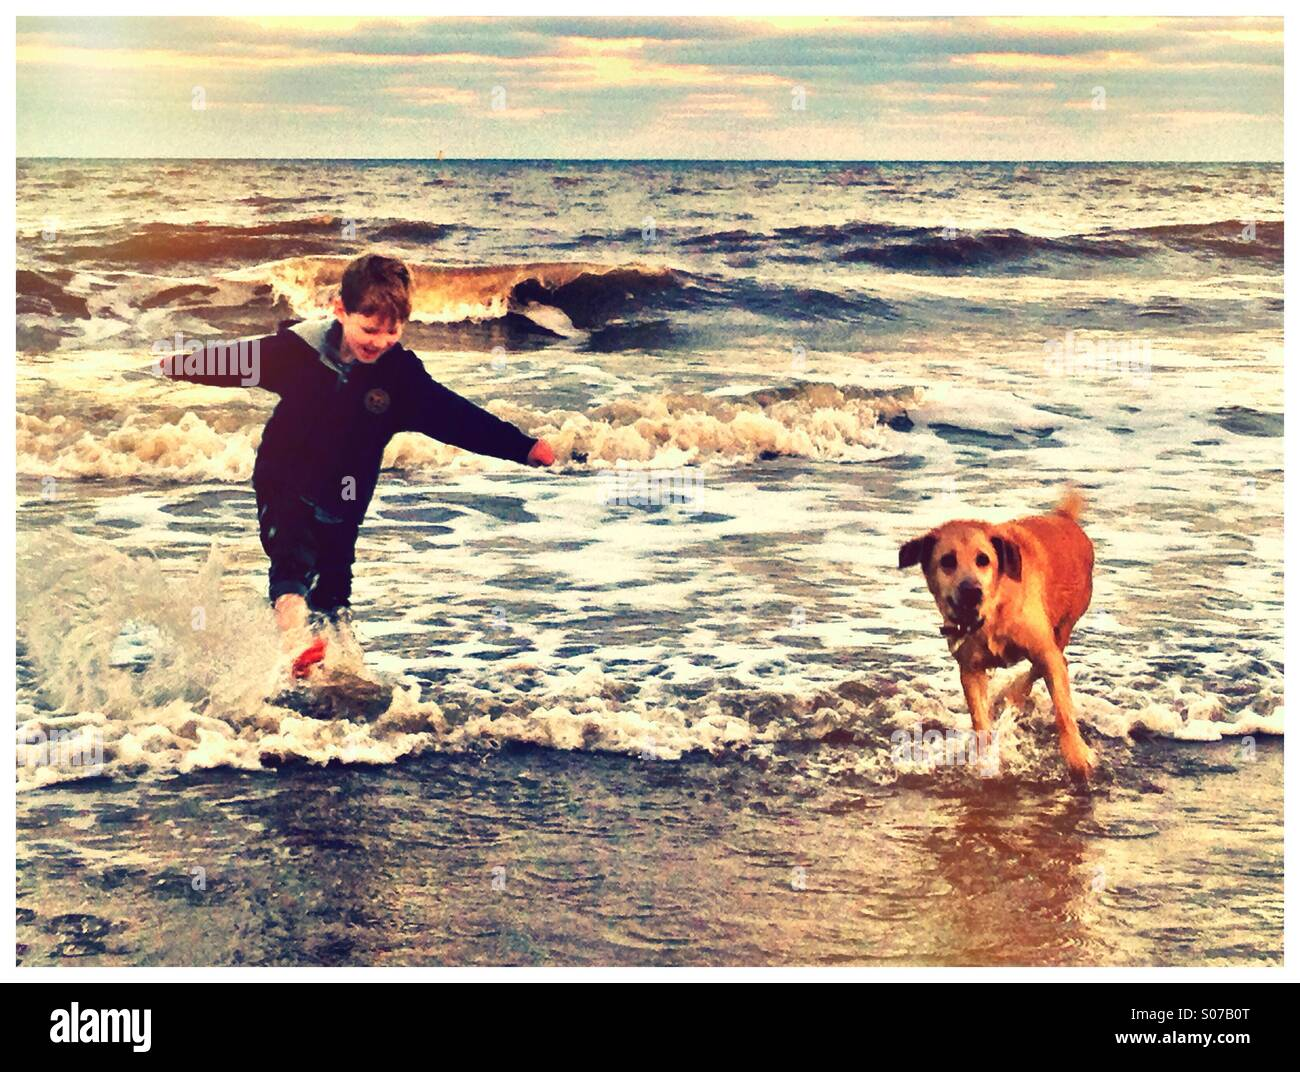 Autumn paddle. Boy and dog in the sea. Hornsea, Yorkshire. - Stock Image